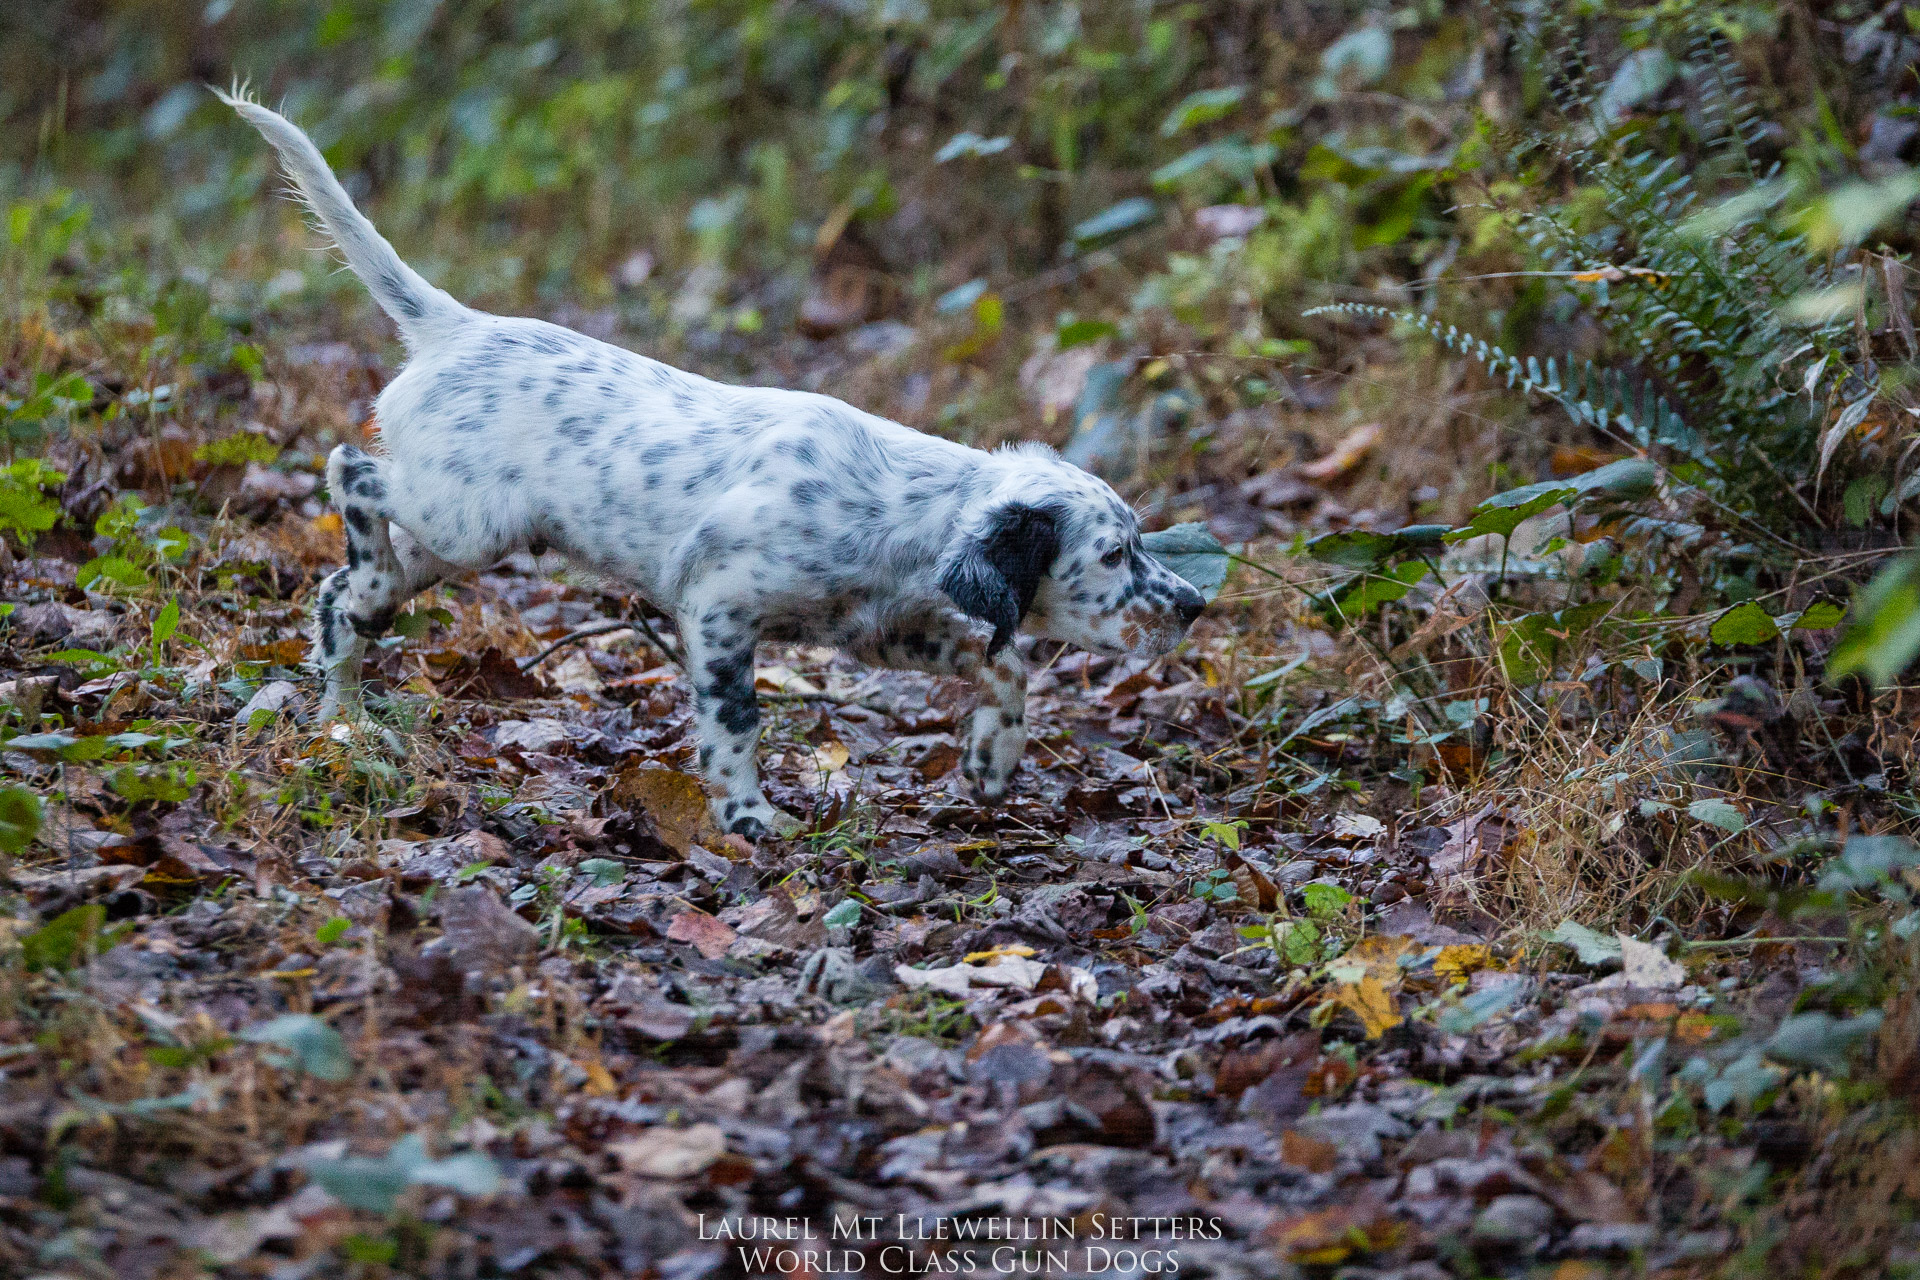 Laurel Mt Llewellin Setter Puppy, Popple